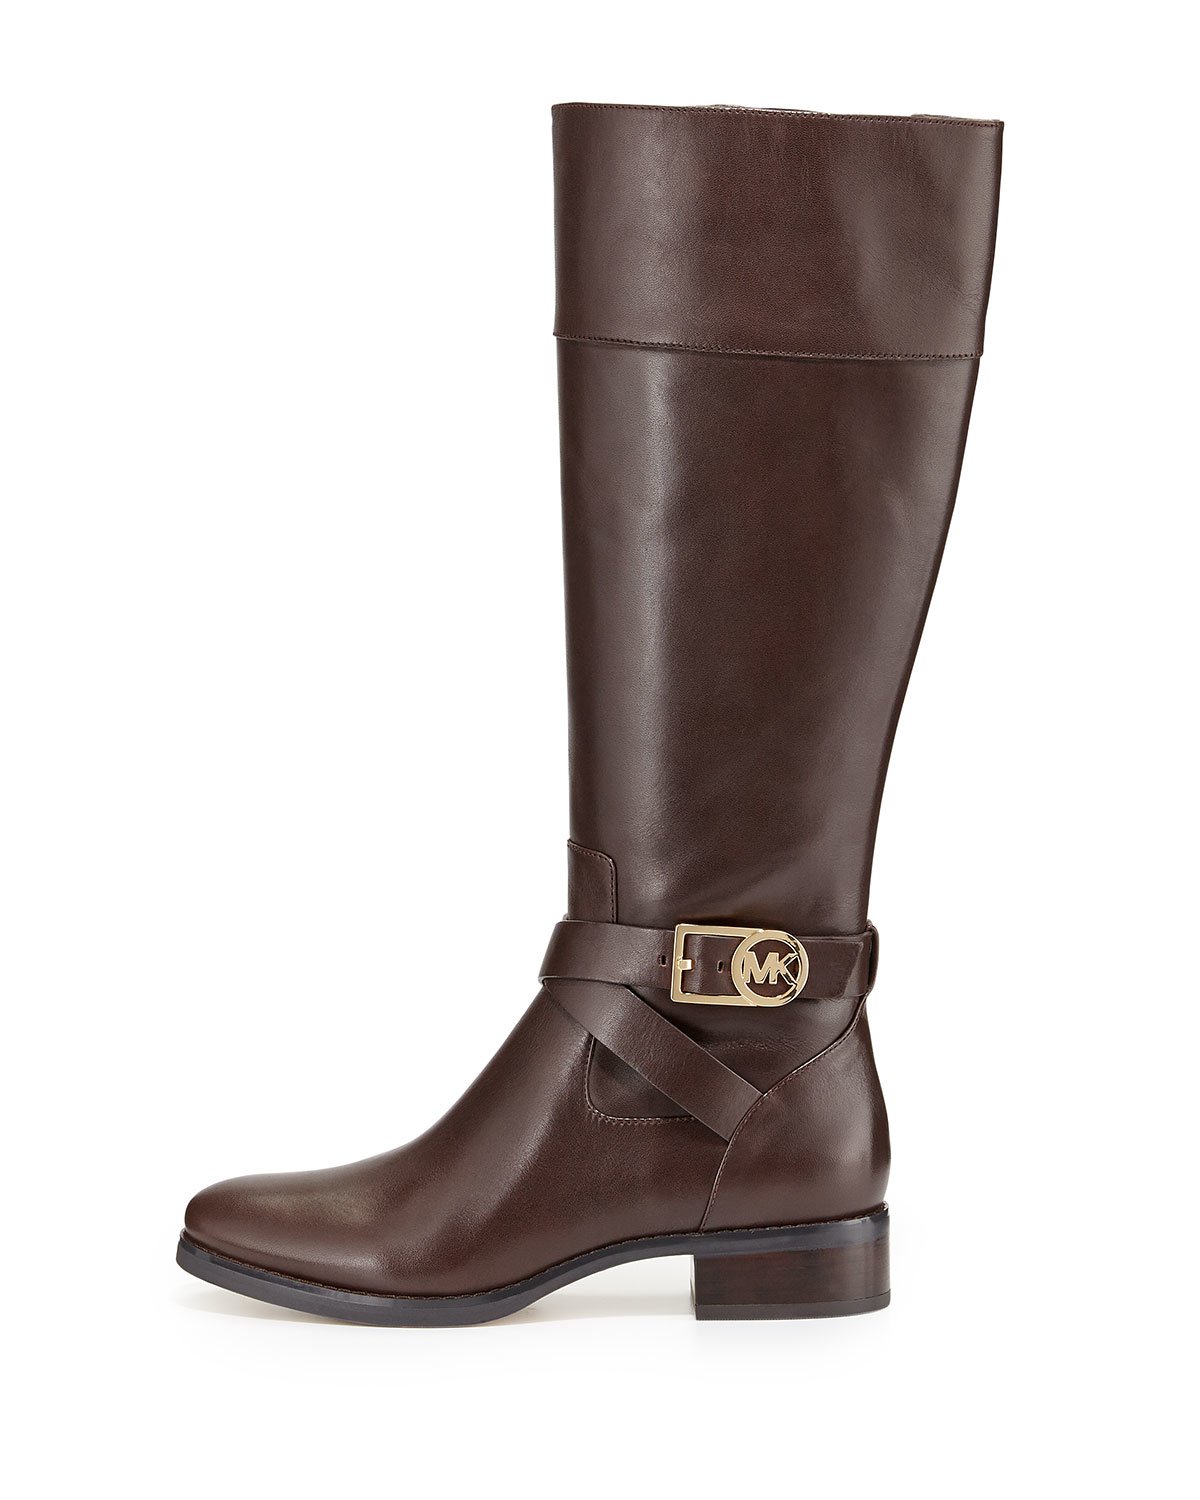 Michael michael kors Bryce Leather Riding Boot in Brown | Lyst